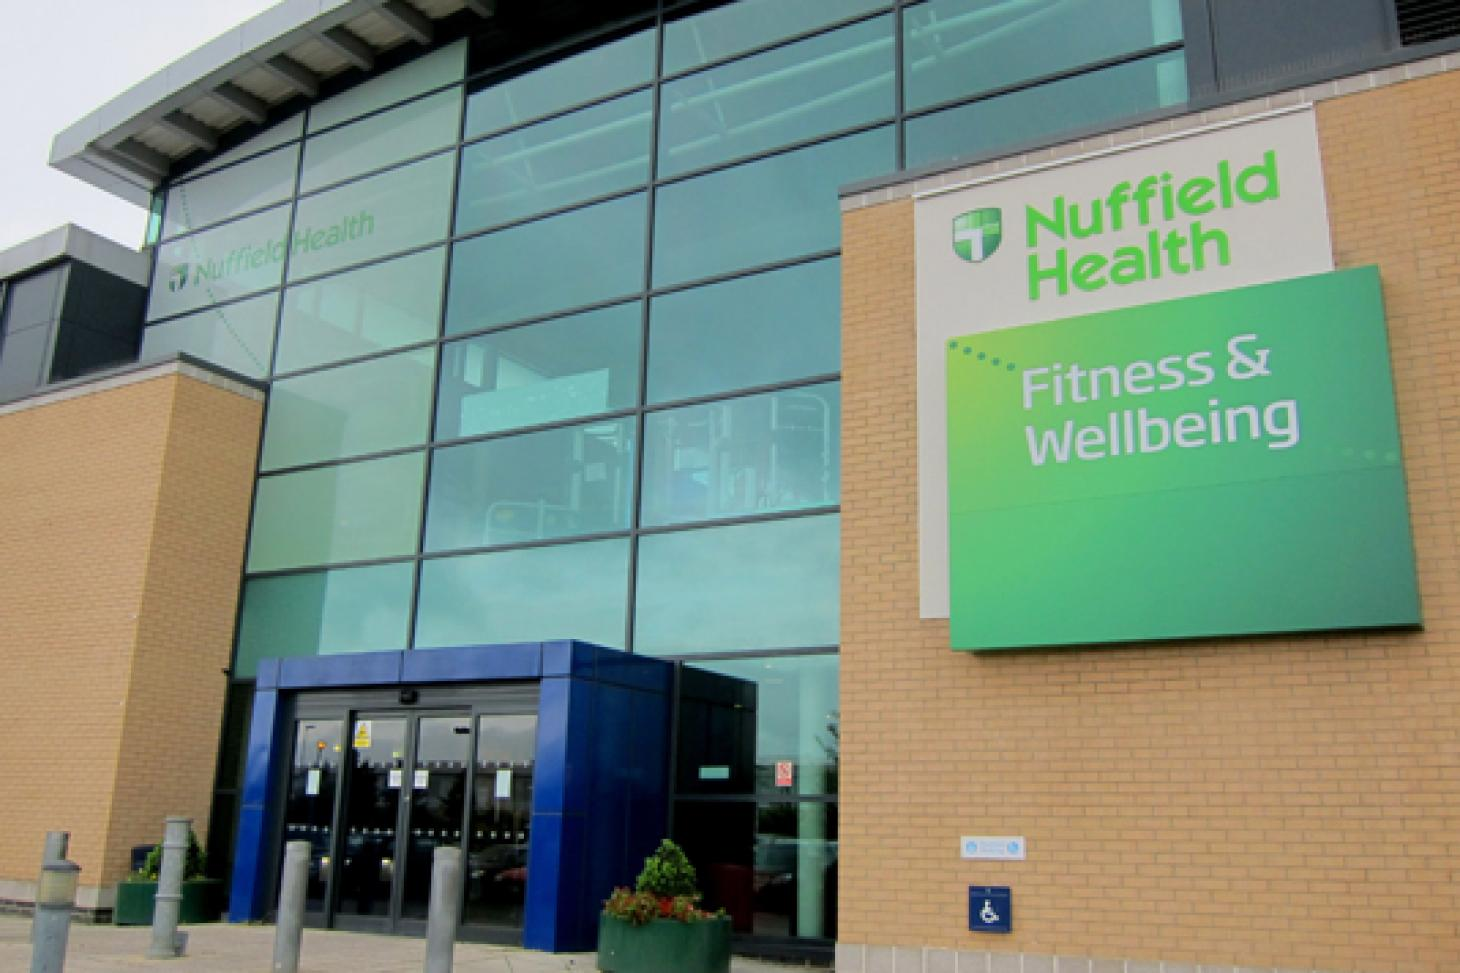 Nuffield Health Norbury Indoor swimming pool